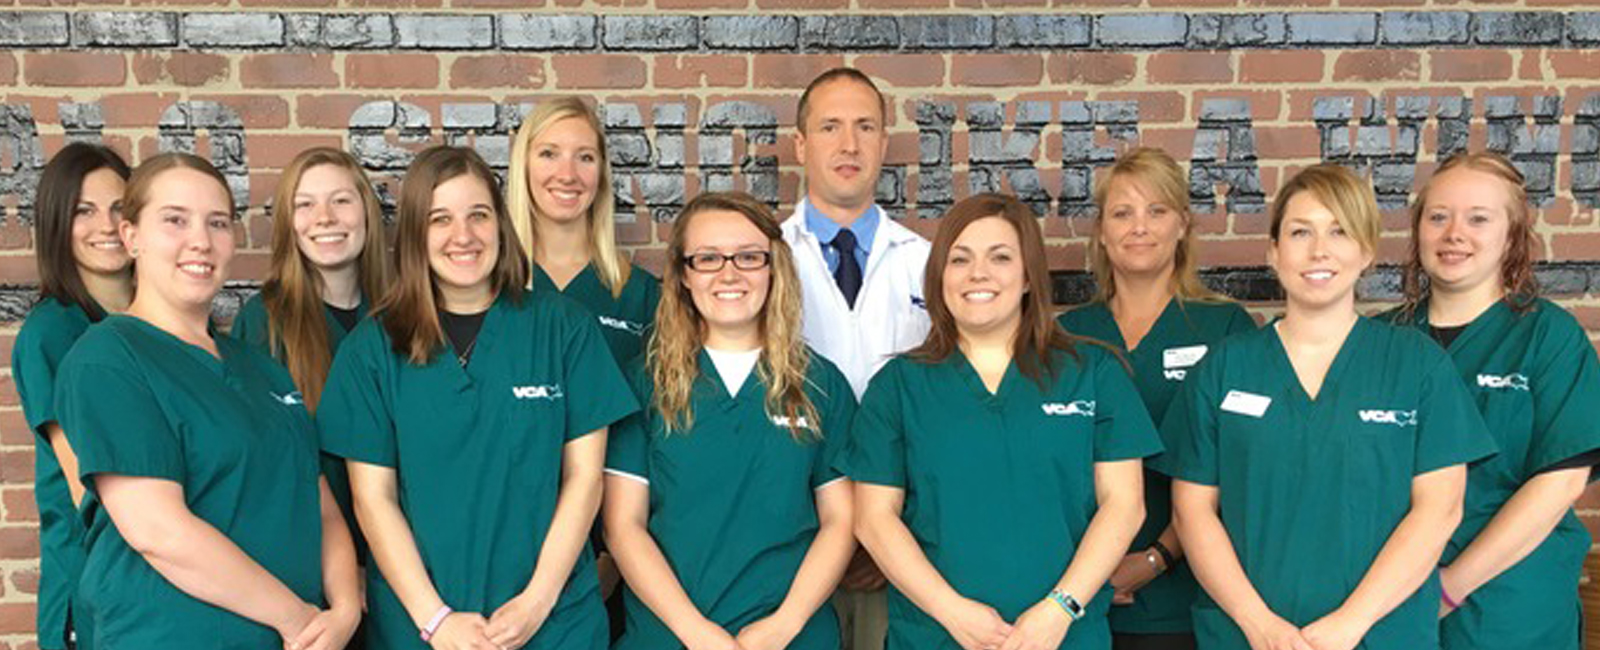 Homepage Team Picture of VCA Tiffin Animal Hospital